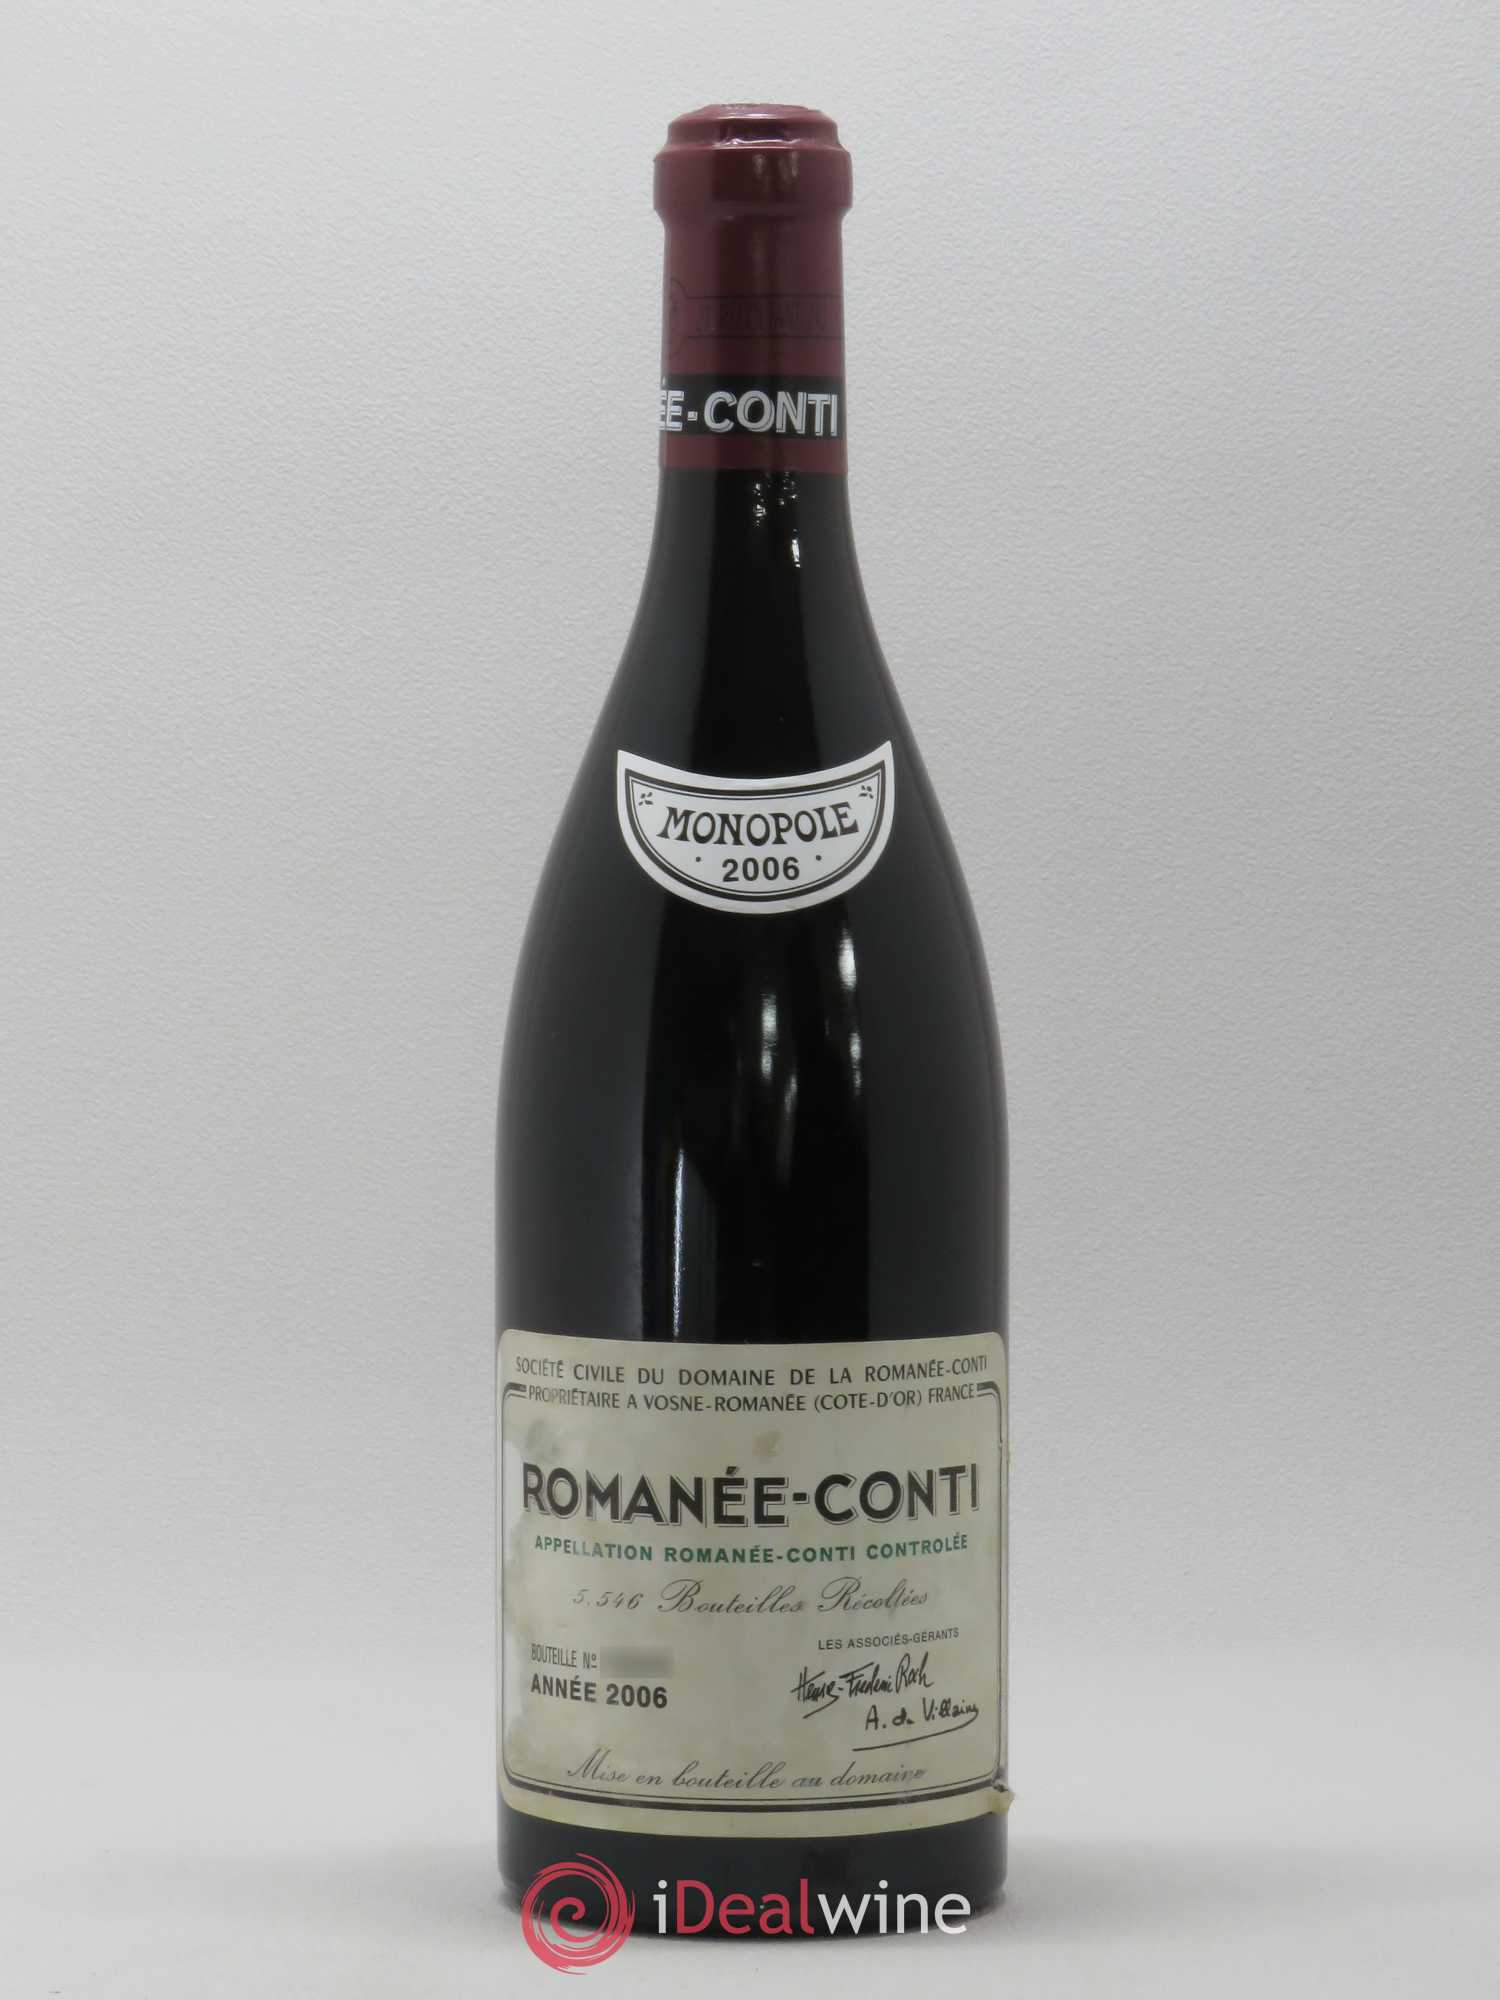 Romanée-Conti Grand Cru Domaine de la Romanée-Conti  2006 - Lot of 1 Bottle